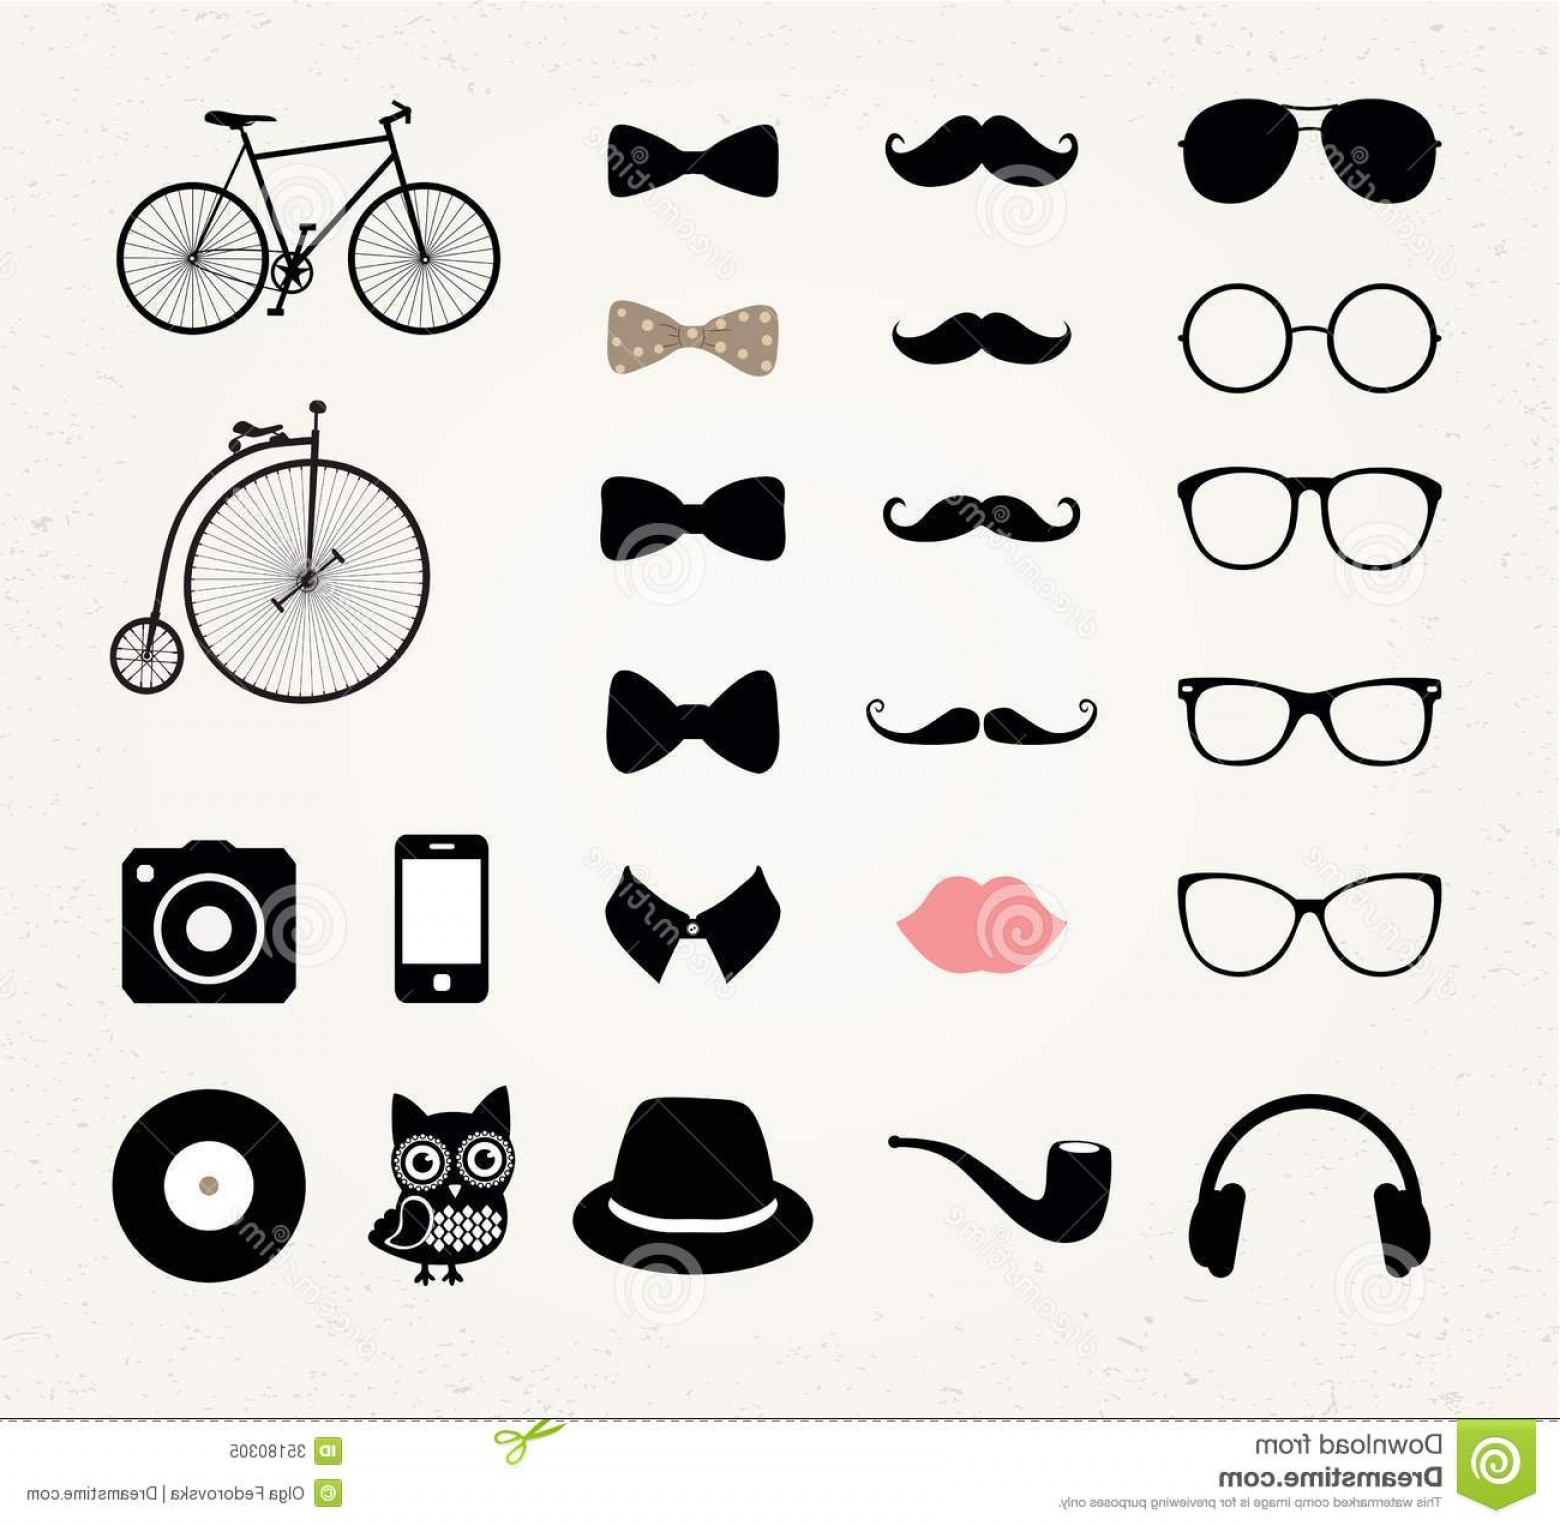 Free Vector Hipster: Royalty Free Stock Photo Hipster Retro Vintage Icon Set Vector Image